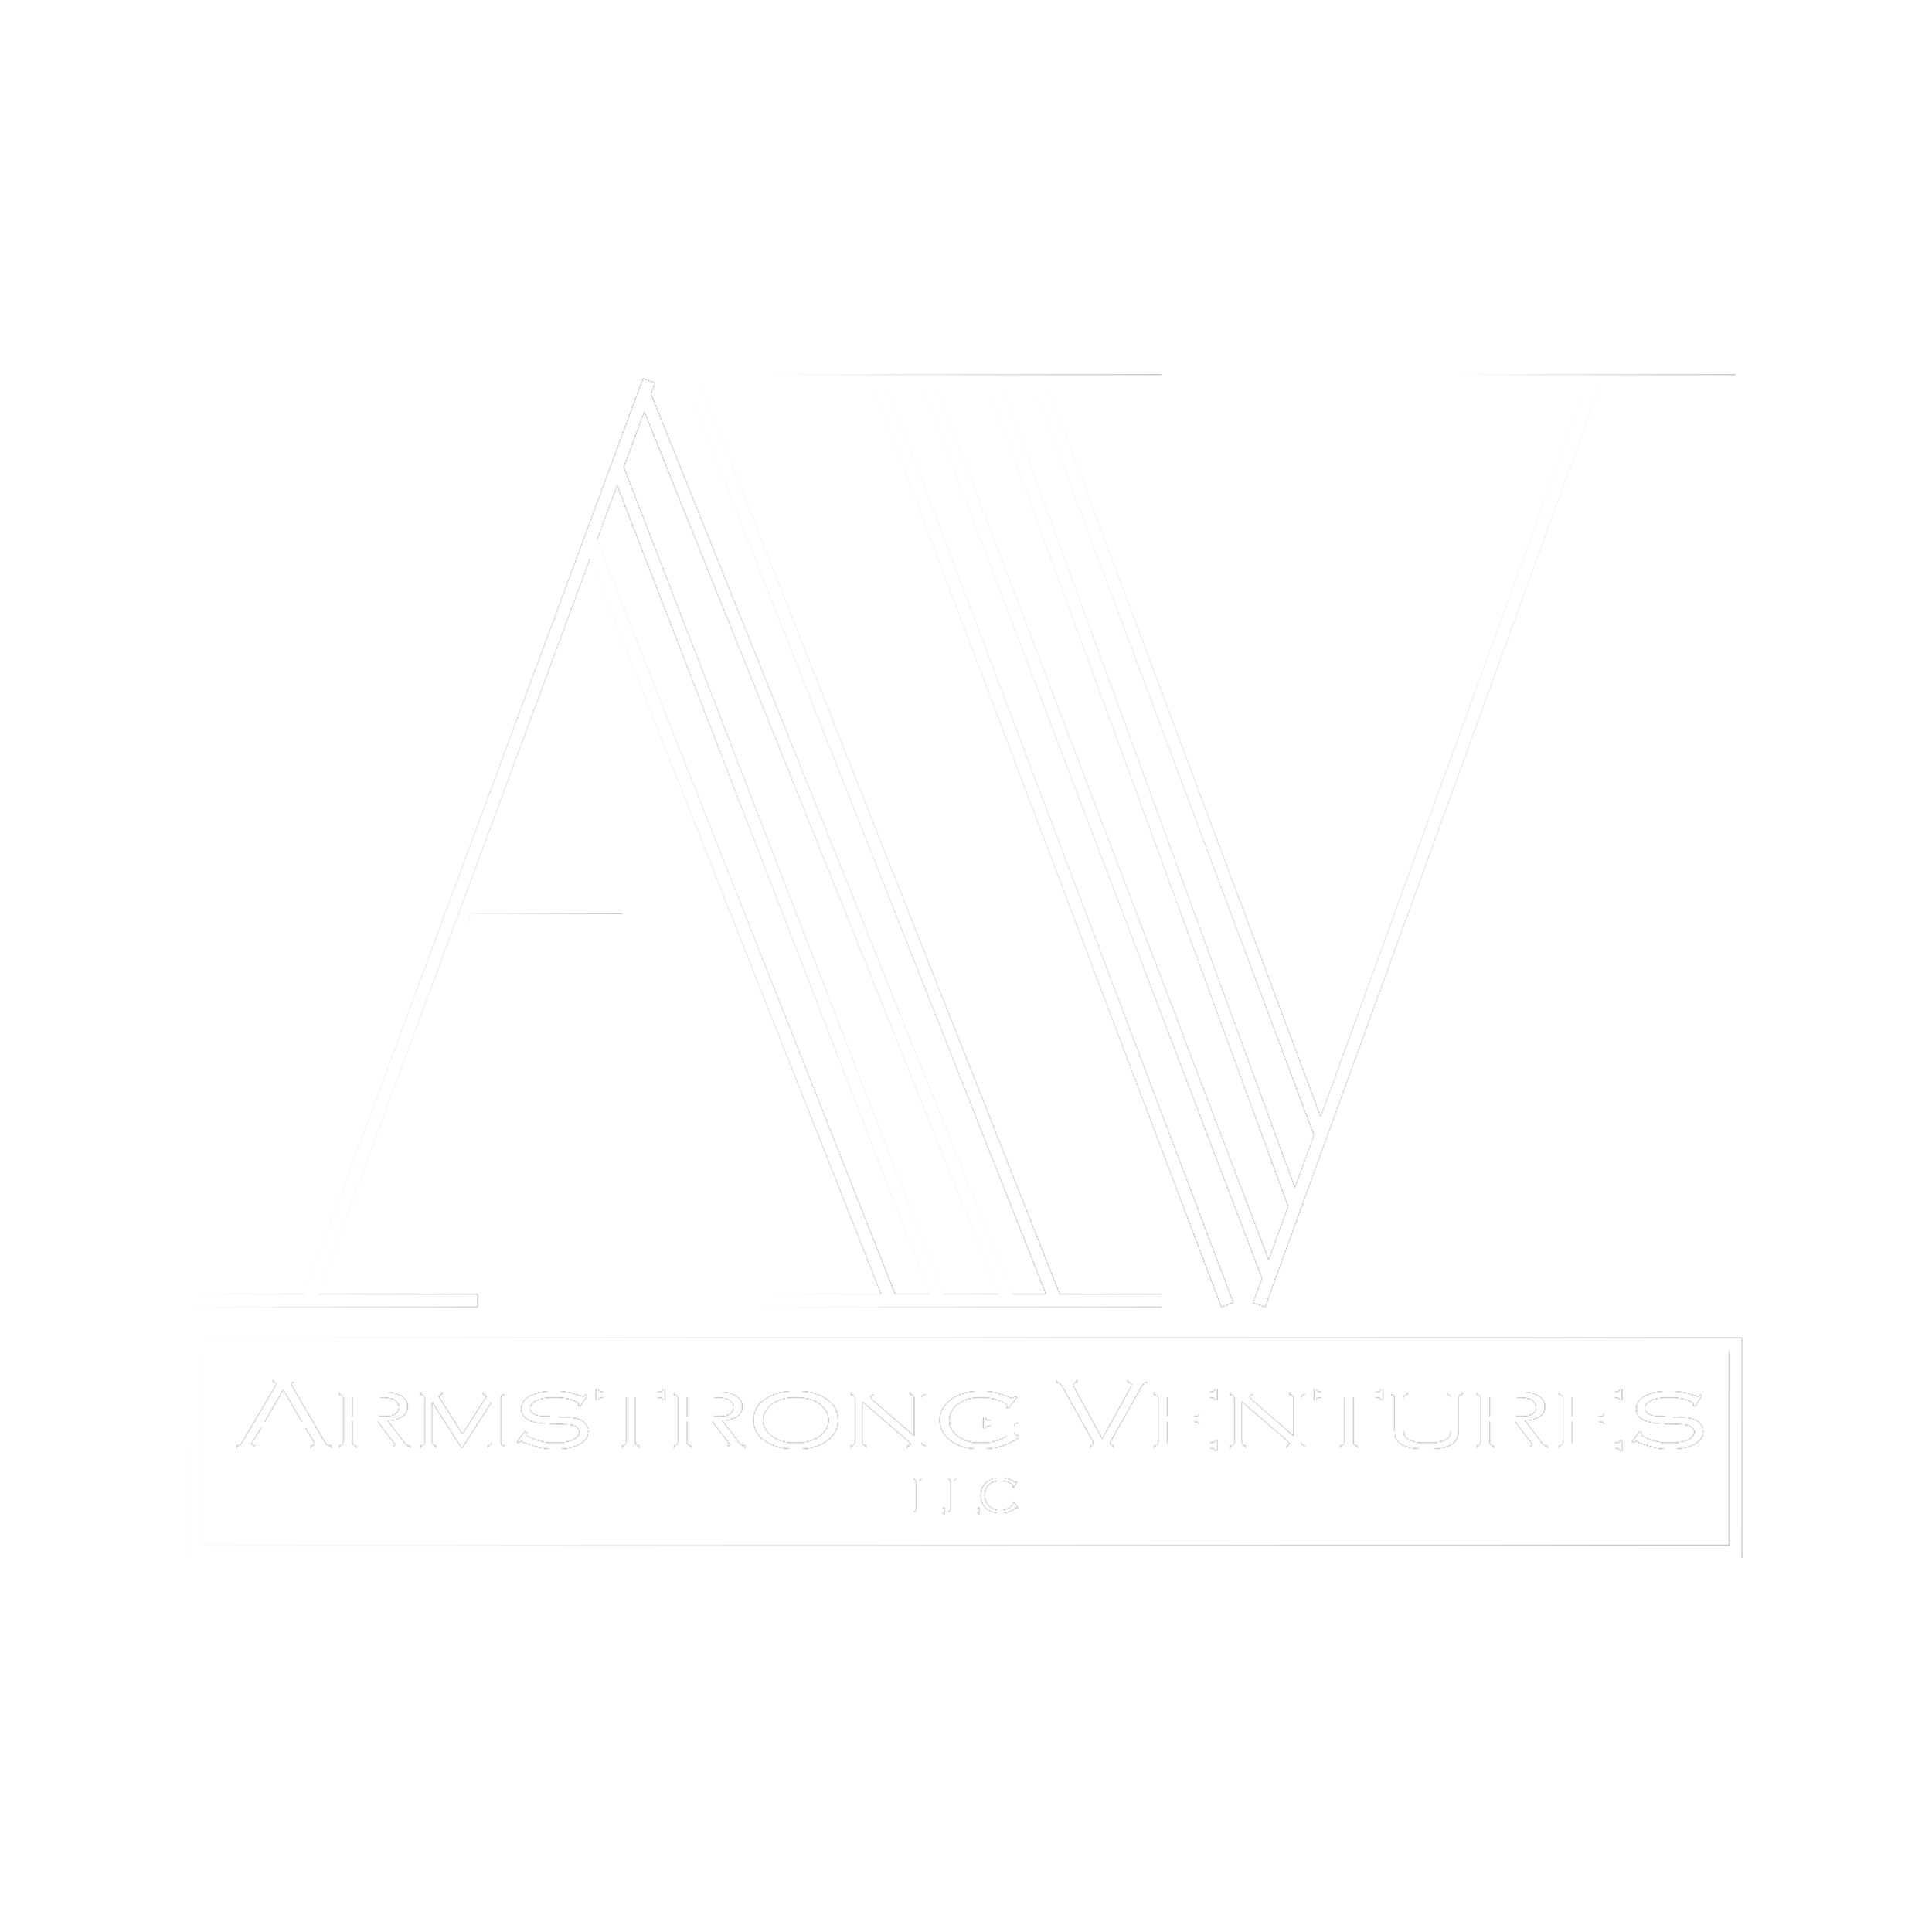 Armstrong Ventures.png